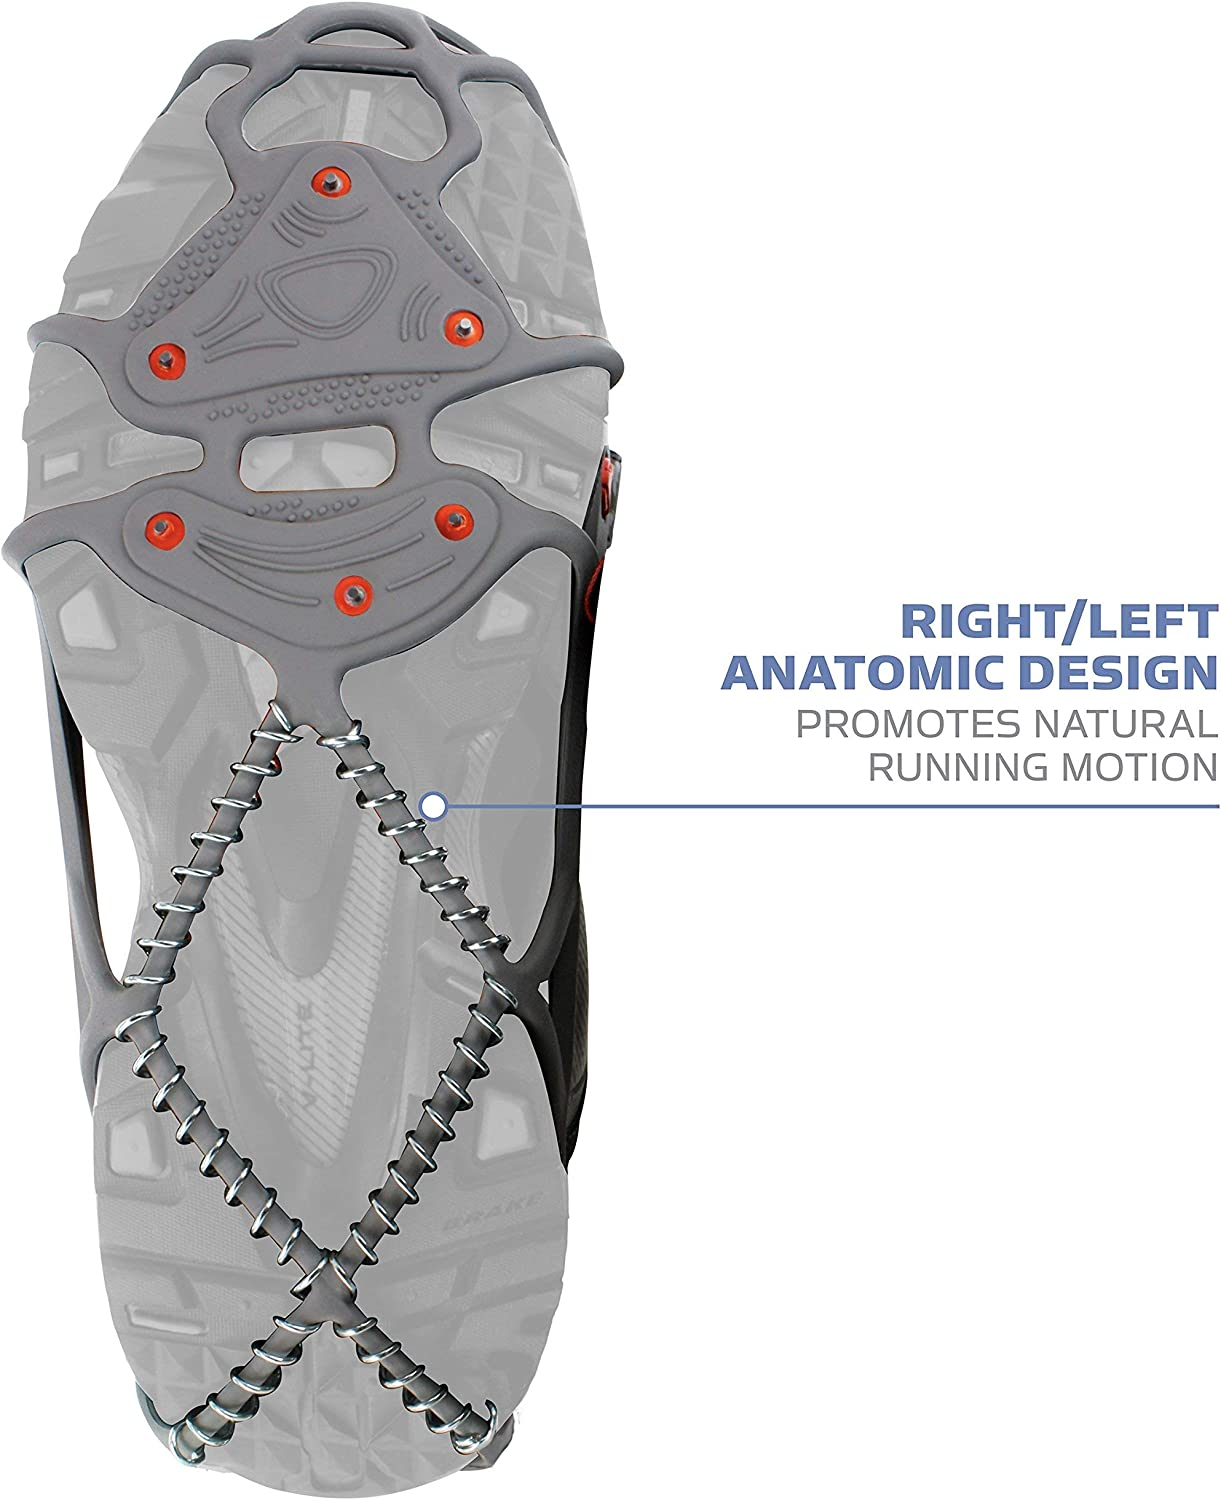 Yaktrax Run Traction Cleats for Running on Snow and Ice Renewed 1 Pair